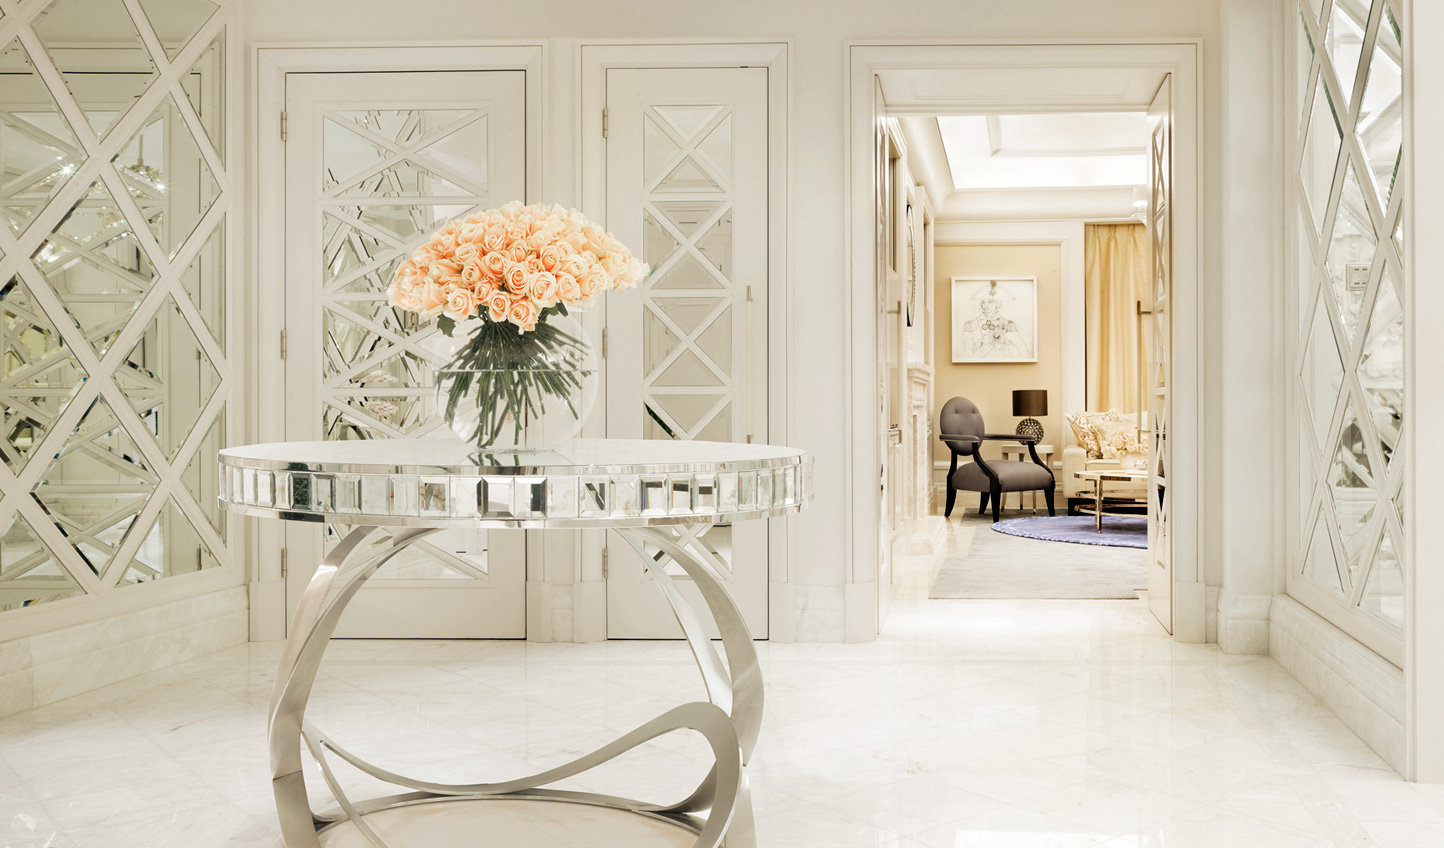 Fragrant blooms, arranged in house, fill the Corinthia